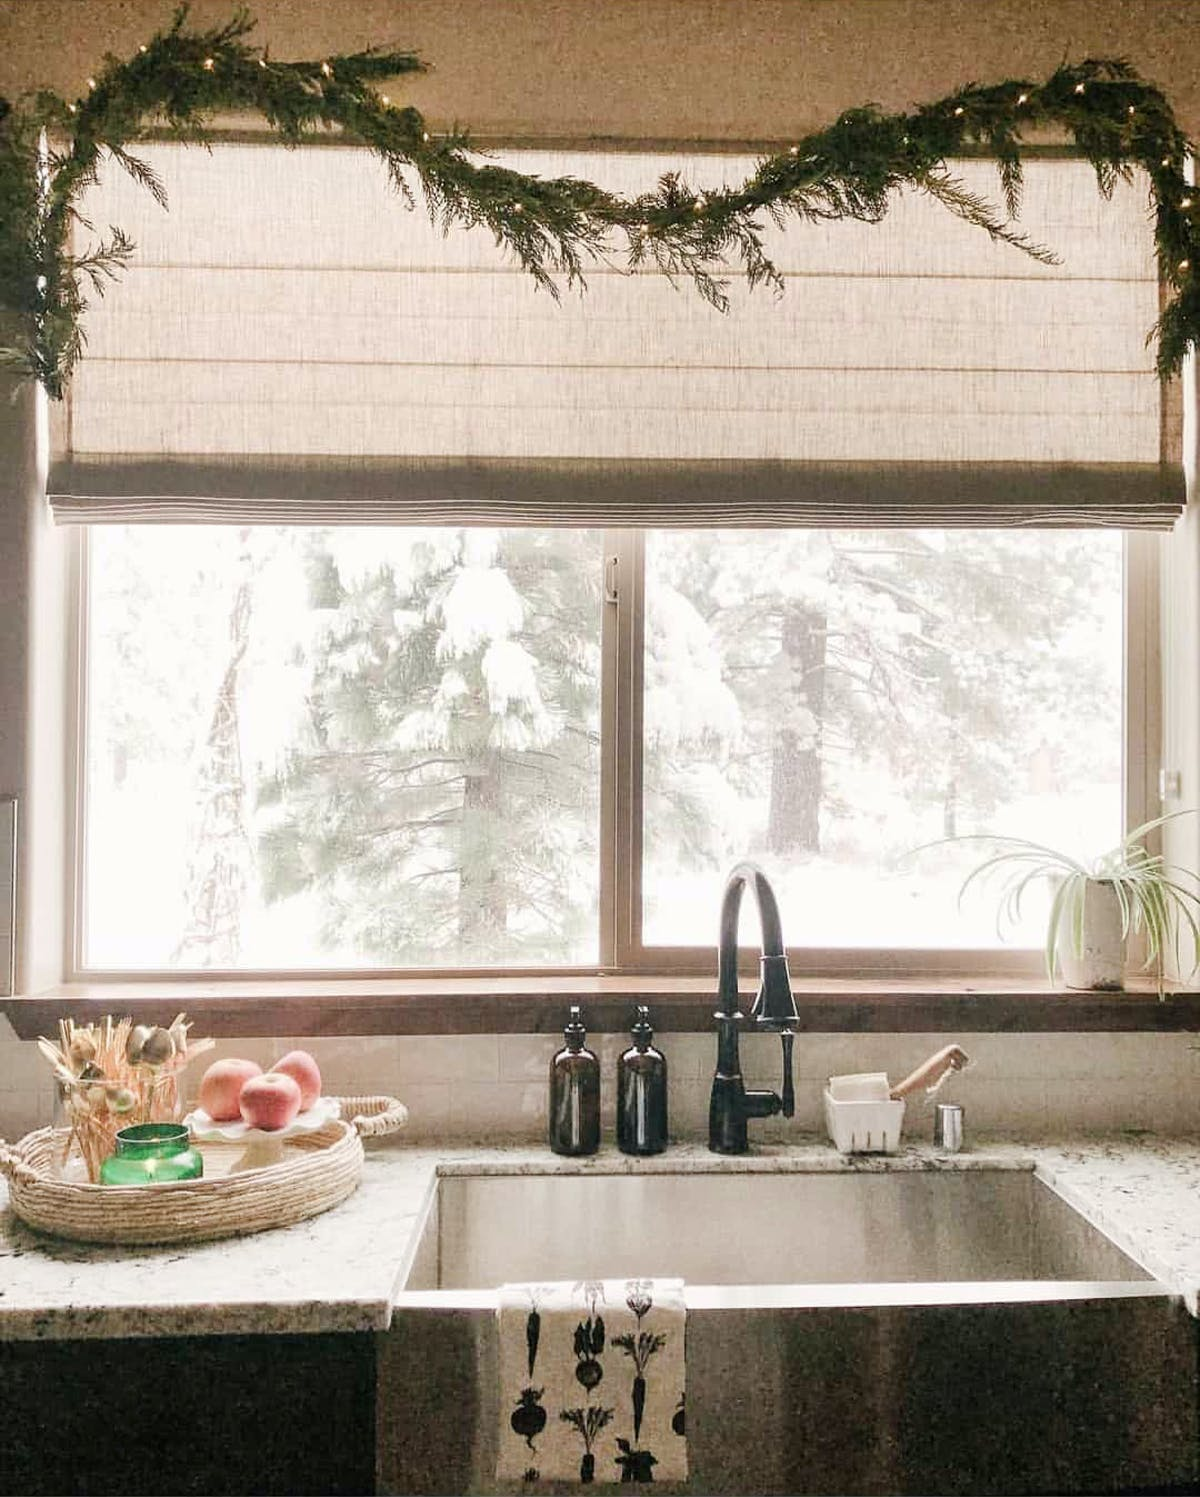 Kitchen sink window with forest view and a roman shade partially lowered.